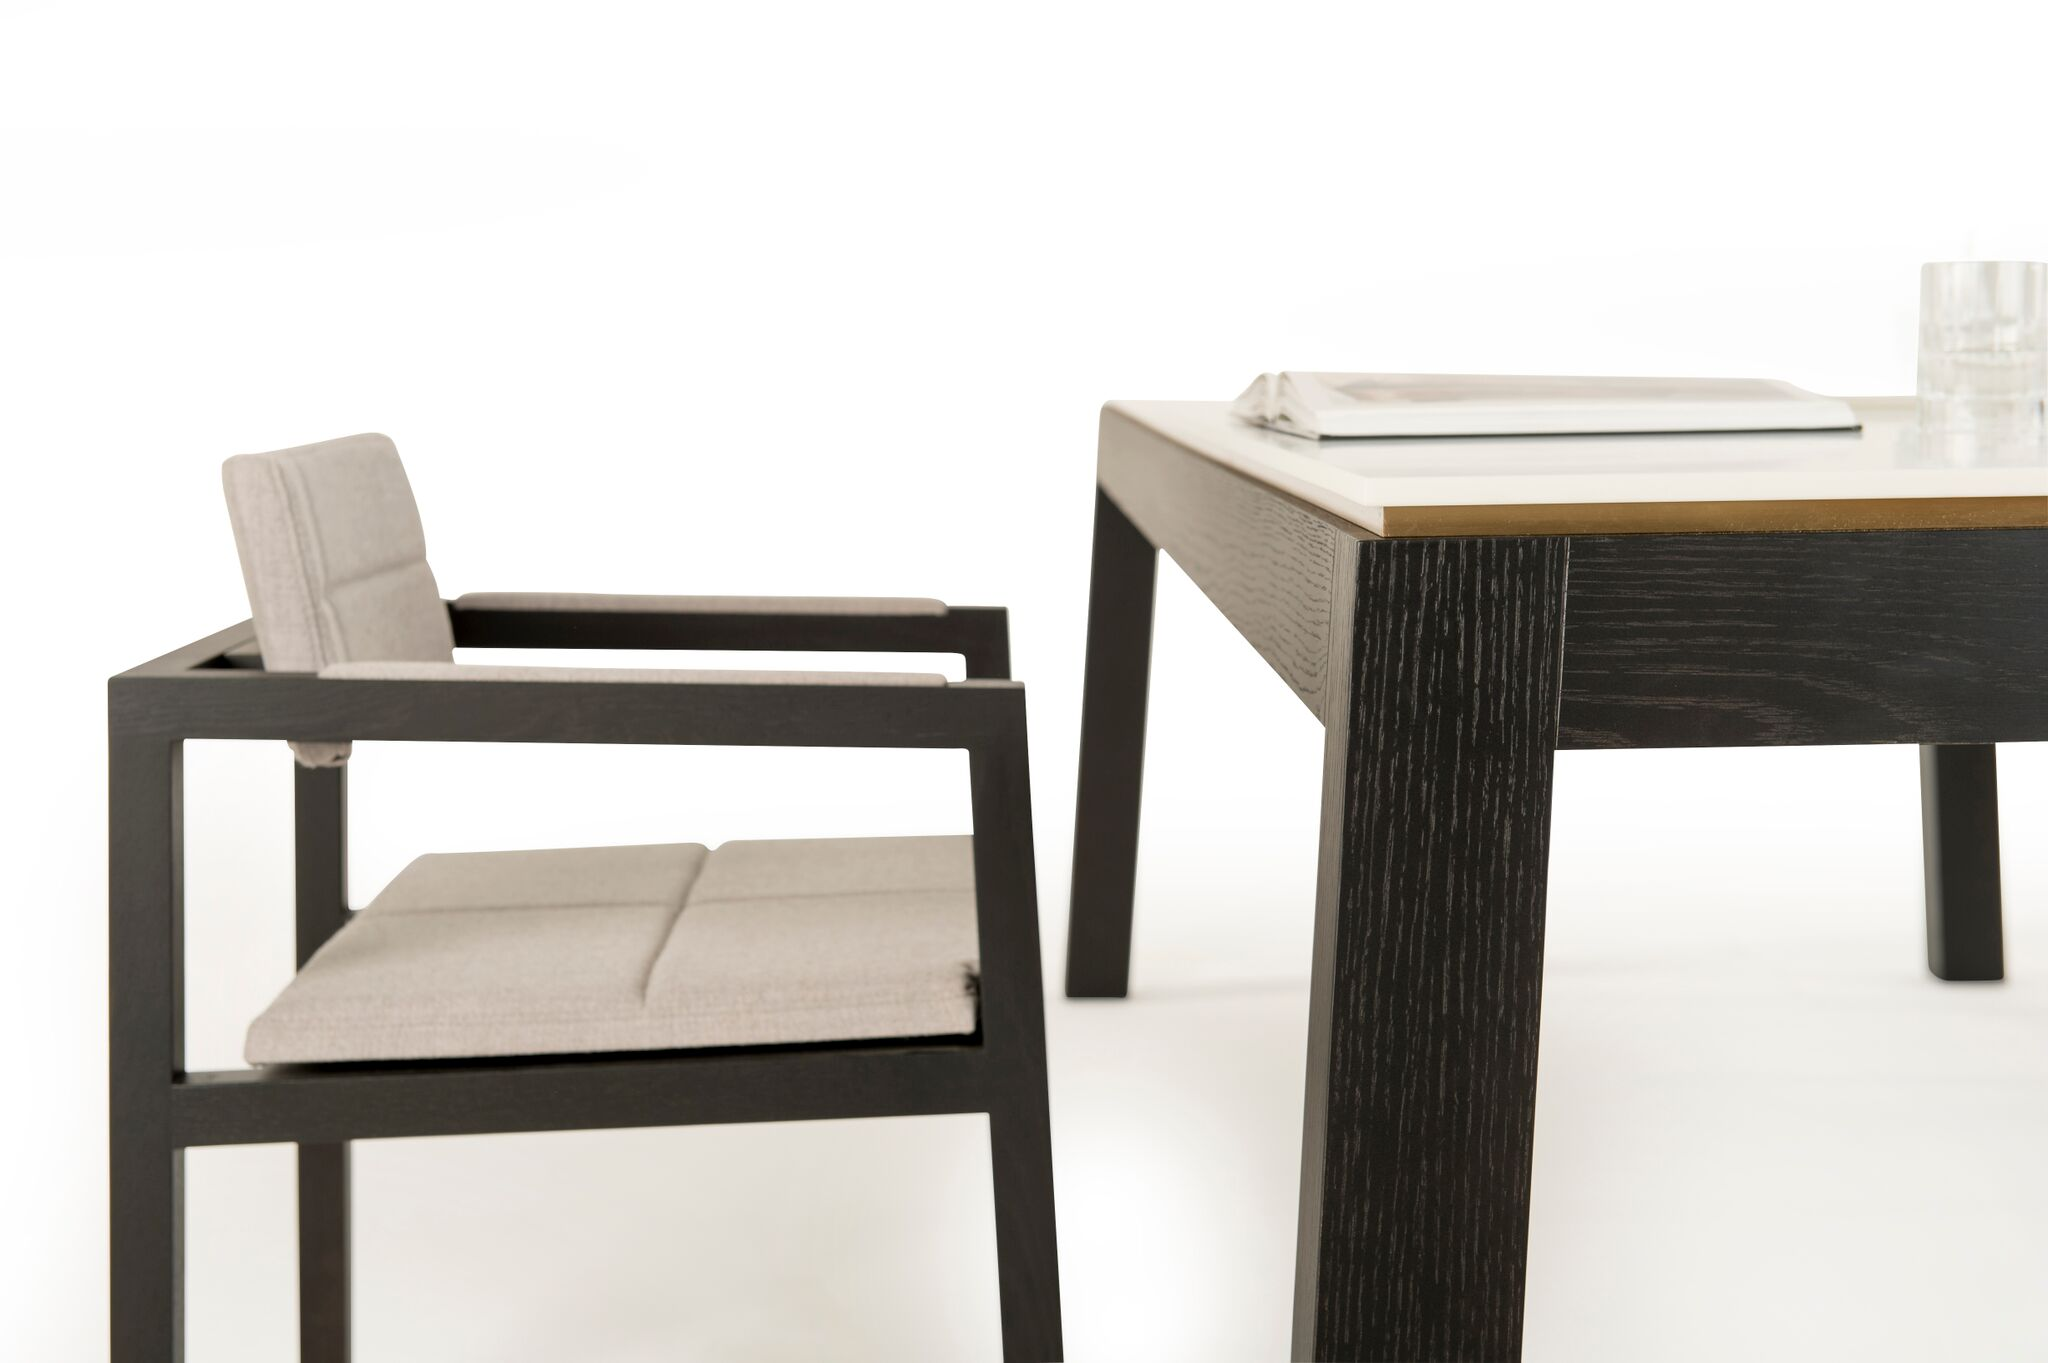 Gallery Of The Mila Table By Fraco Crea Local Australian Furniture Design Melbourne, Vic Image 8